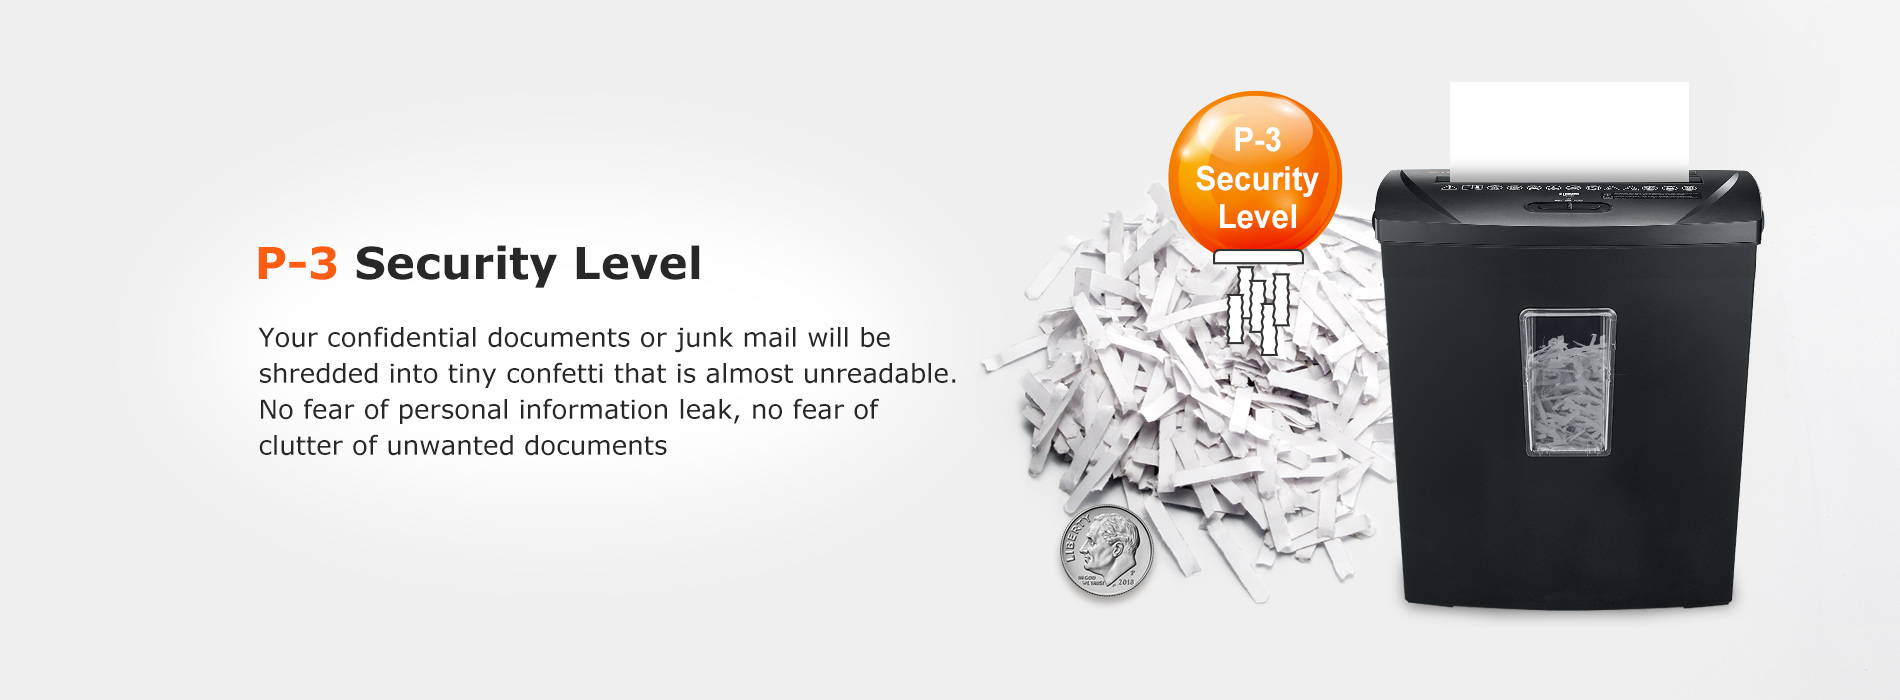 P-3 Security Level Your confidential documents or junk mail will be shredded into tiny confetti that is almost unreadable. No fear of personal information leak, no fear of clutter of unwanted documents